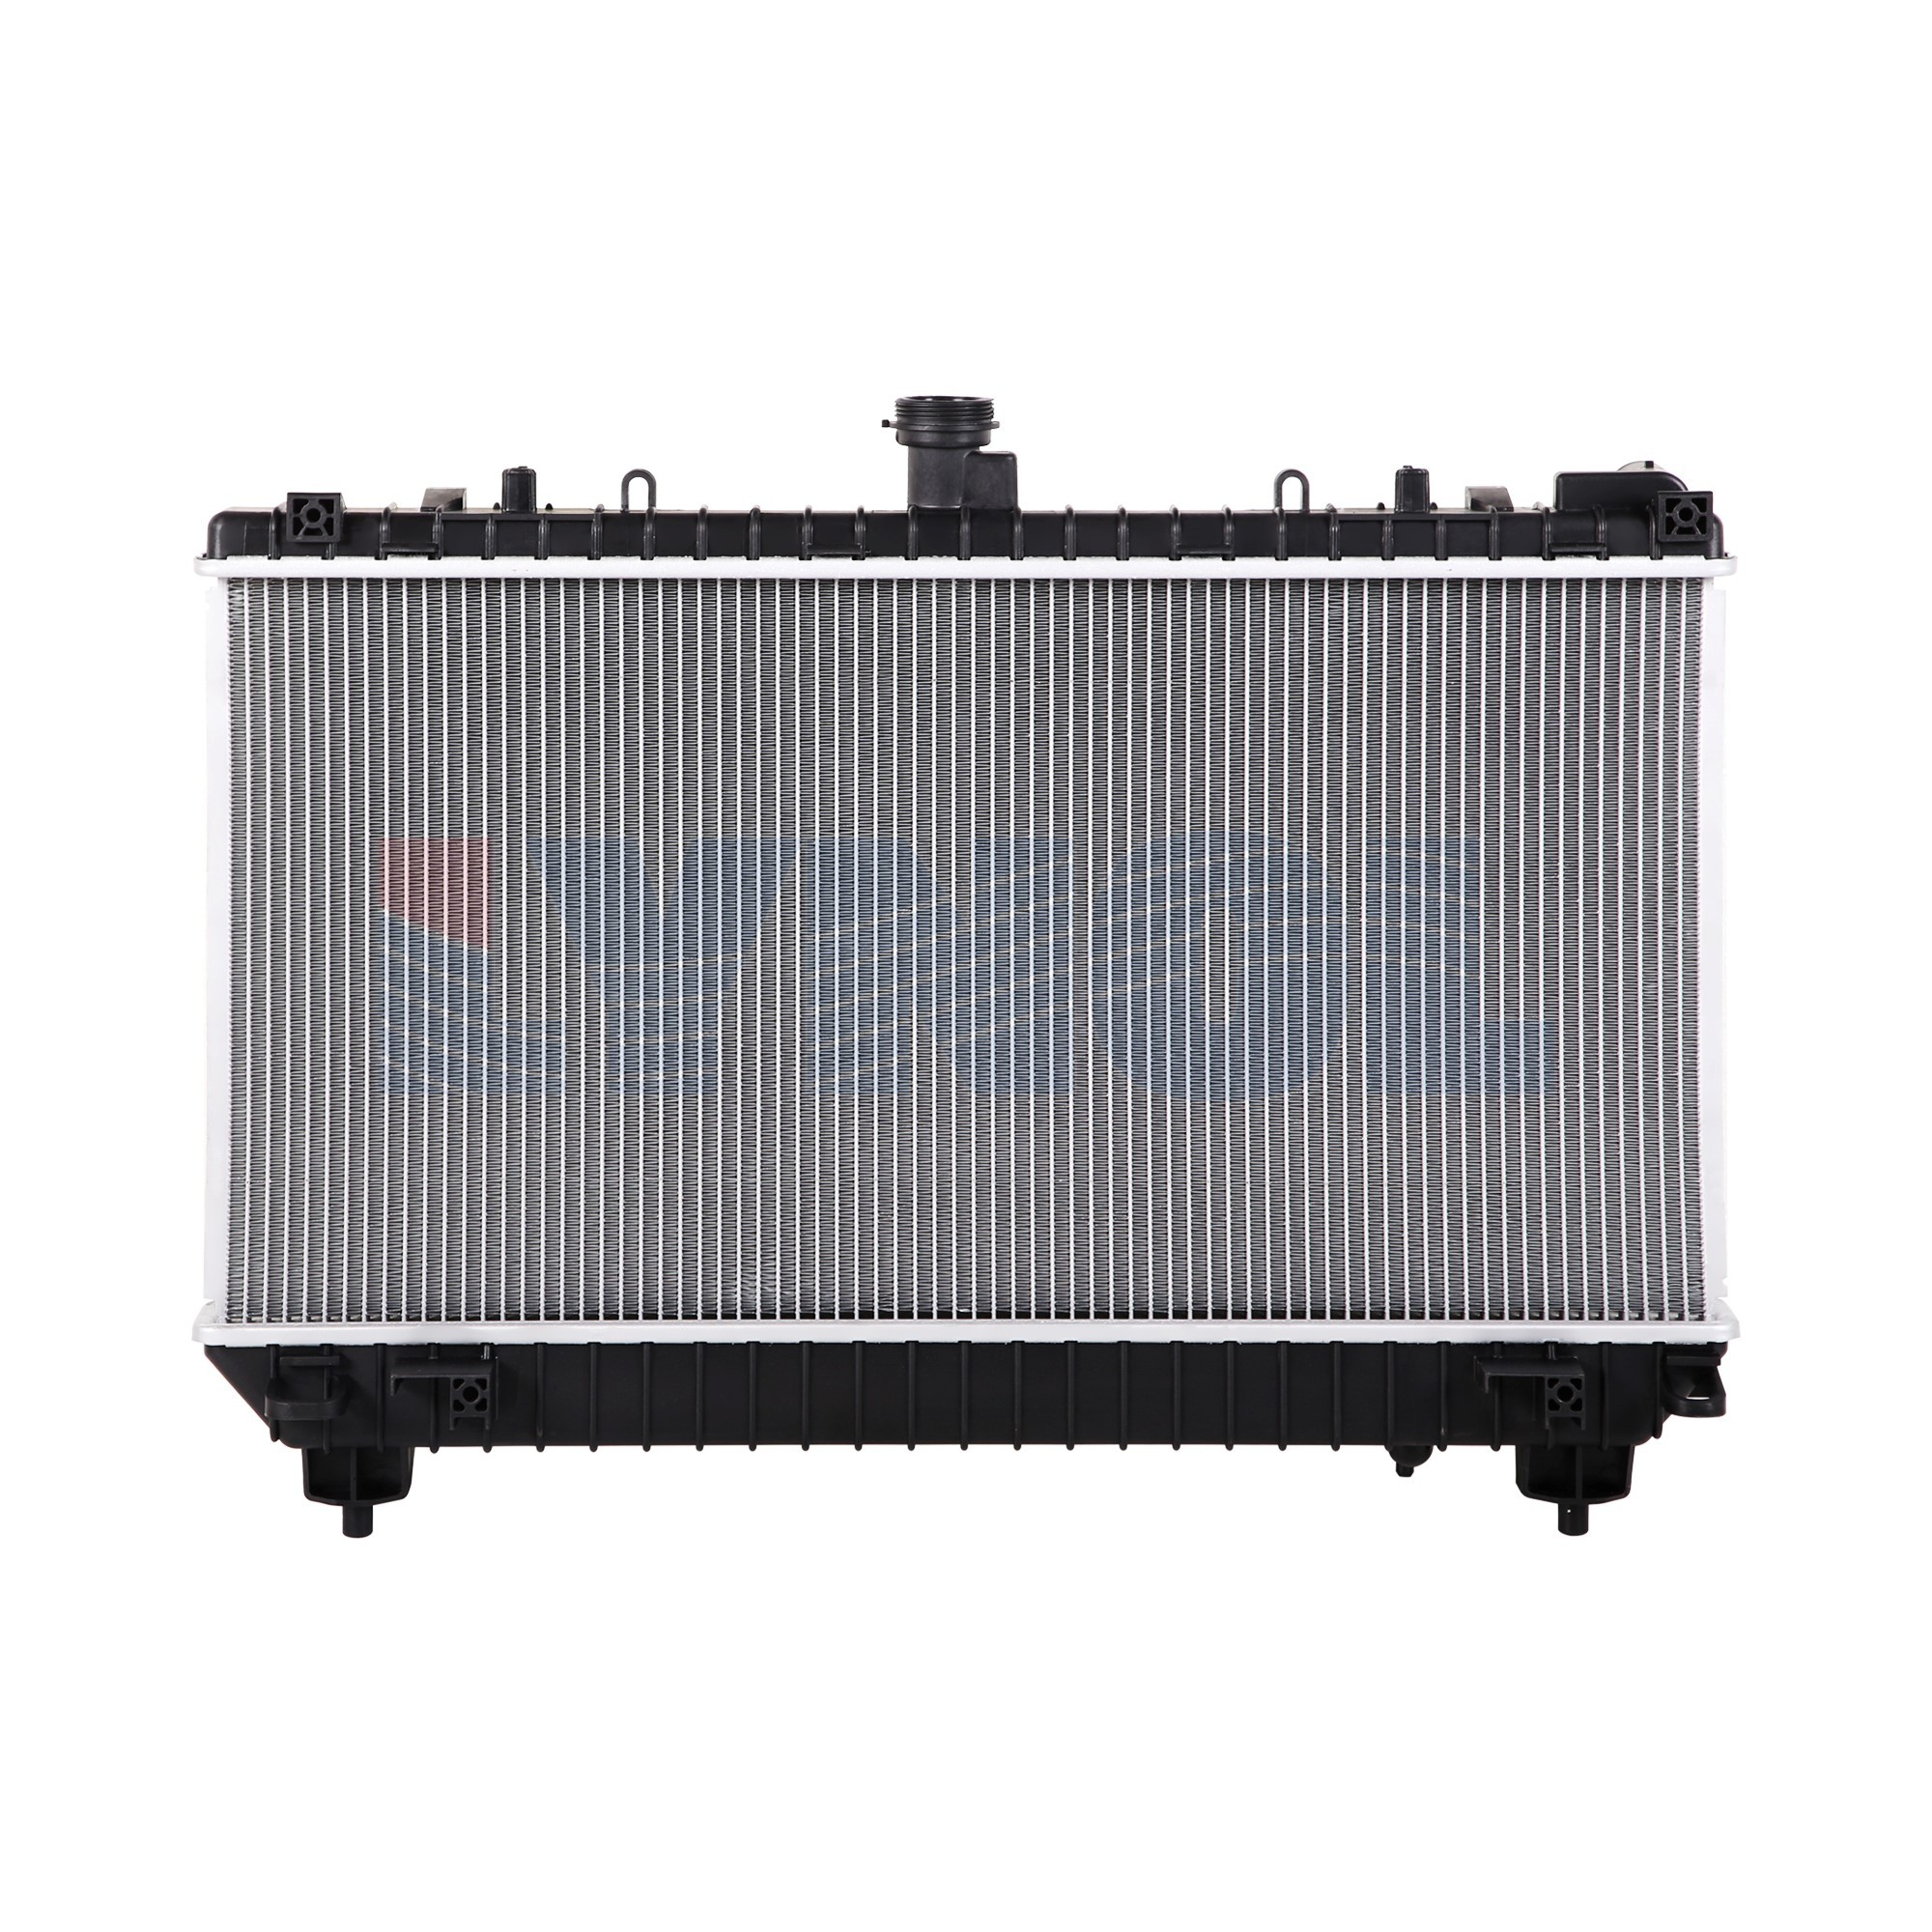 13142 - RADIATOR  - 10-11 CAMARO-CPE 11-11 CONV AT/MT V8 6.2L W/TOC RAD PT/AC..